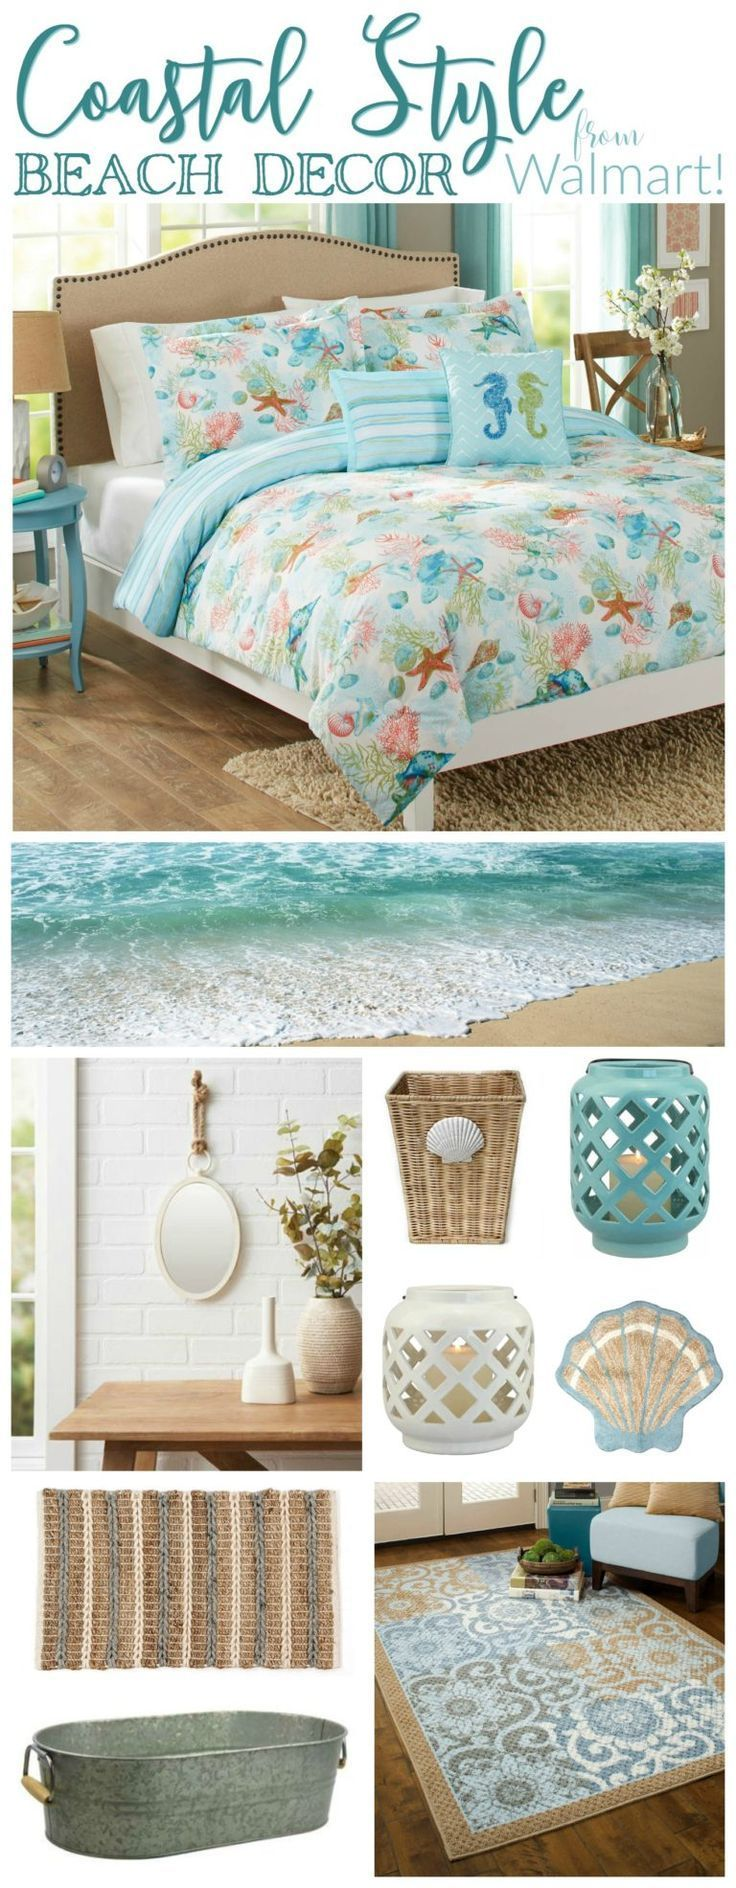 Coastal Style Beach Decor From Walmart